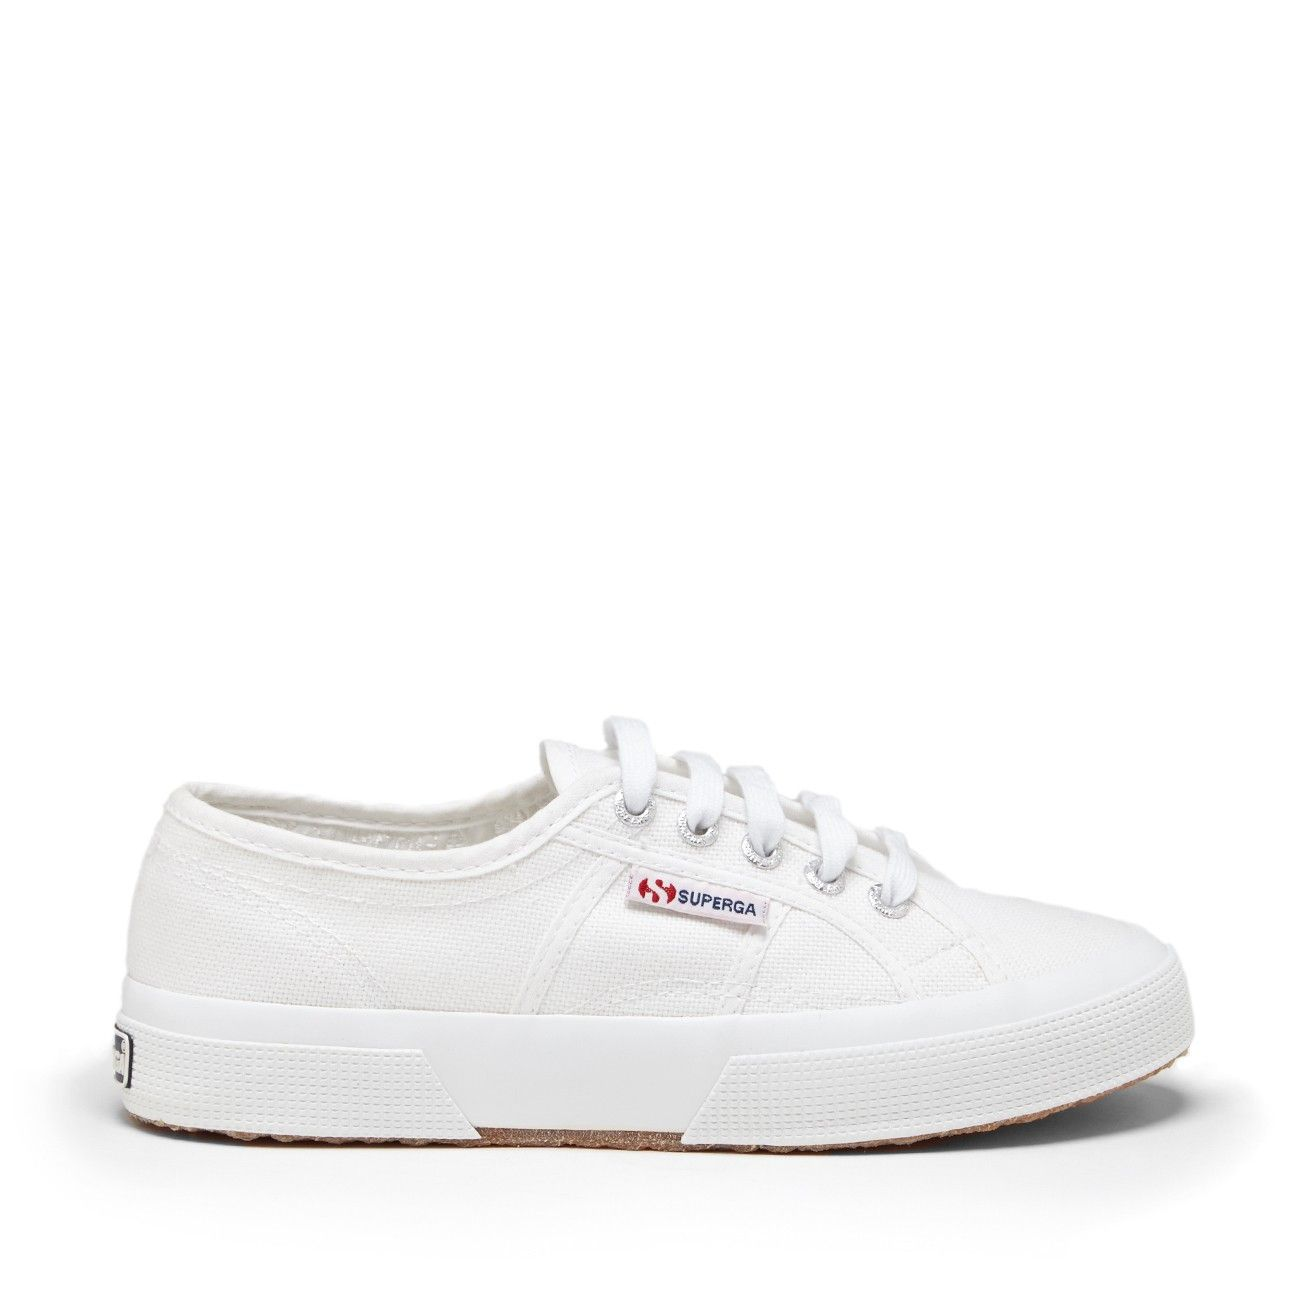 Superga 2750 Canvas Trainers Womens Athleisure Sneakers Shoes Footwear Women's Shoes Clothing, Shoes & Accessories